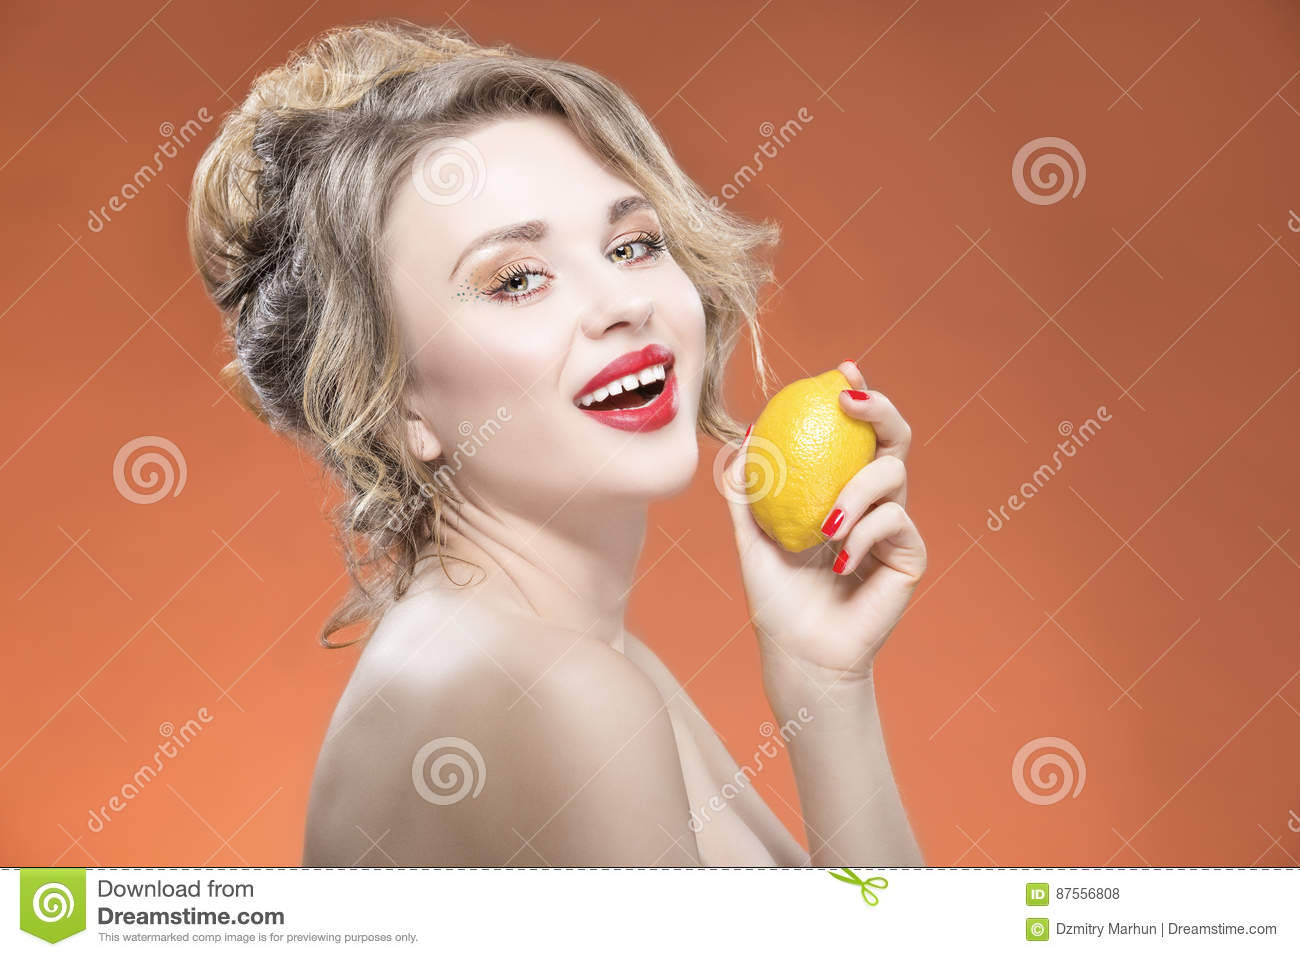 Yes What Fruit look like naked girl very much